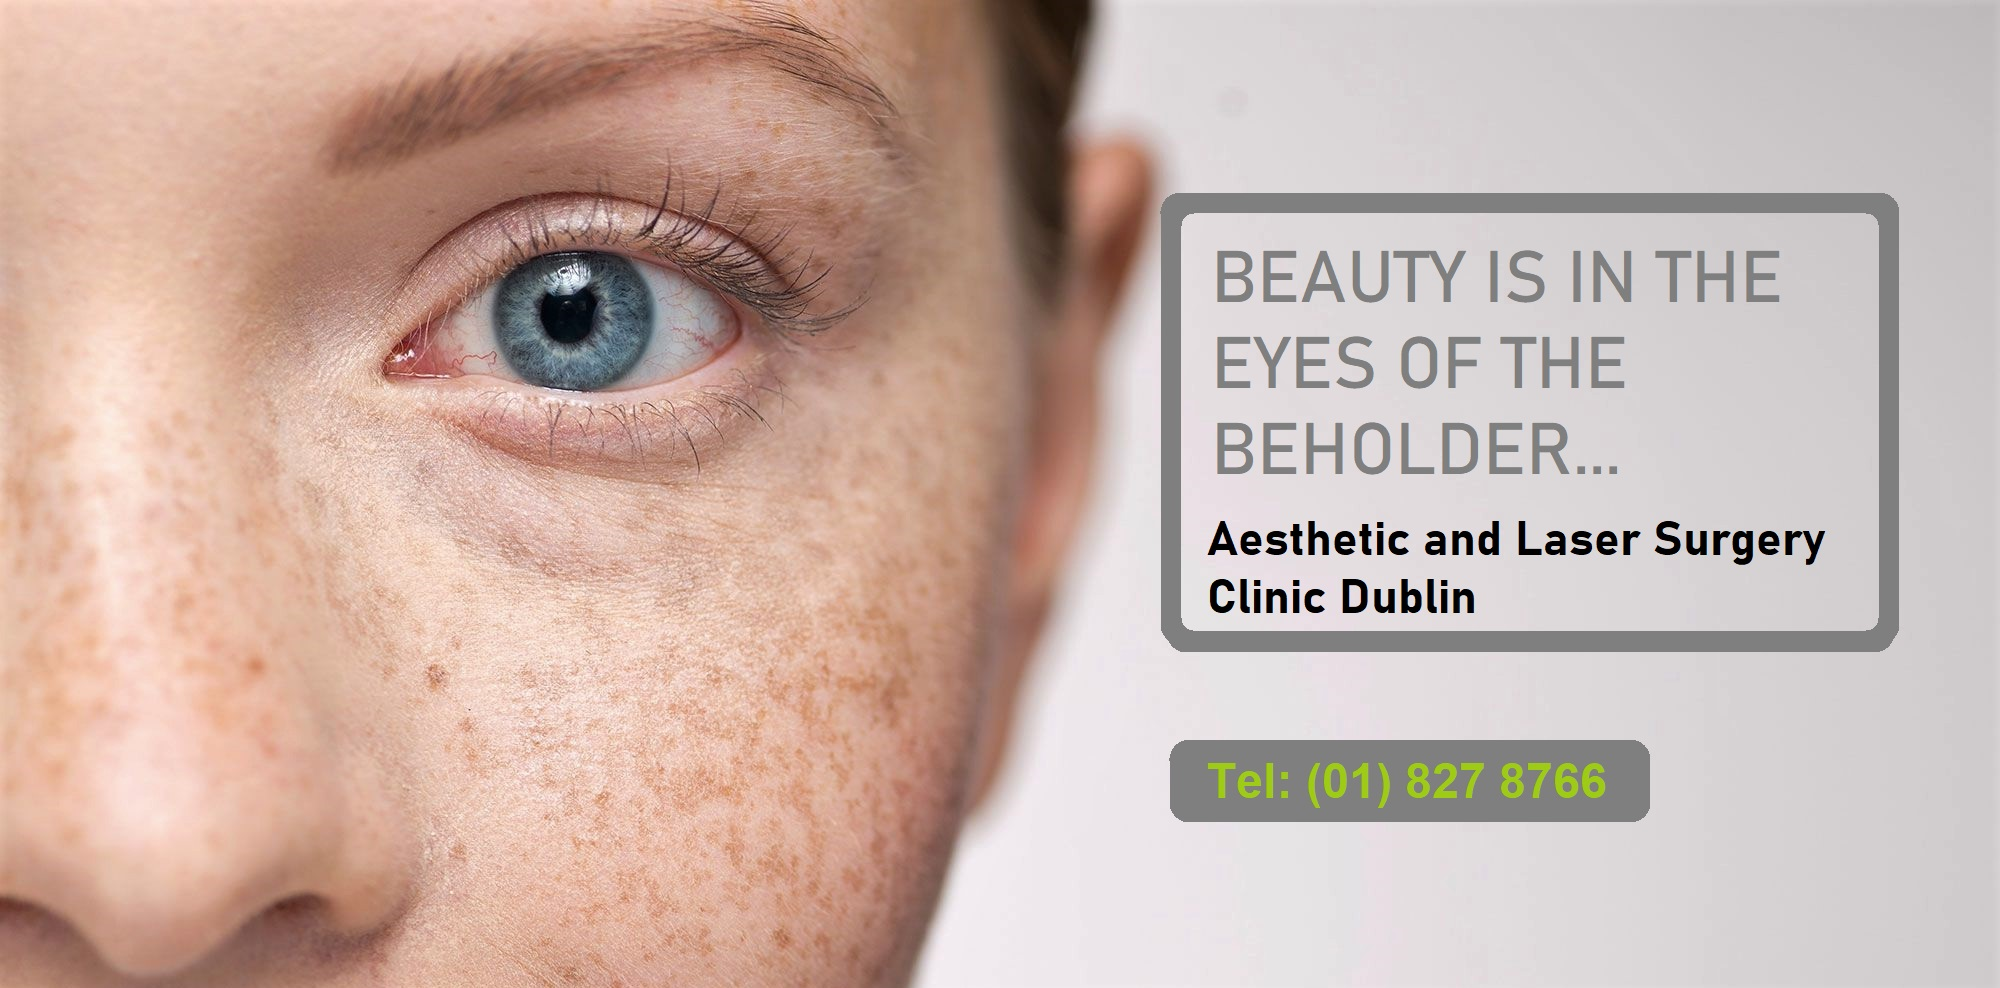 Cosmetic surgery and aesthetic medicine clinic Castleknock Cosmetic Clinic Dublin